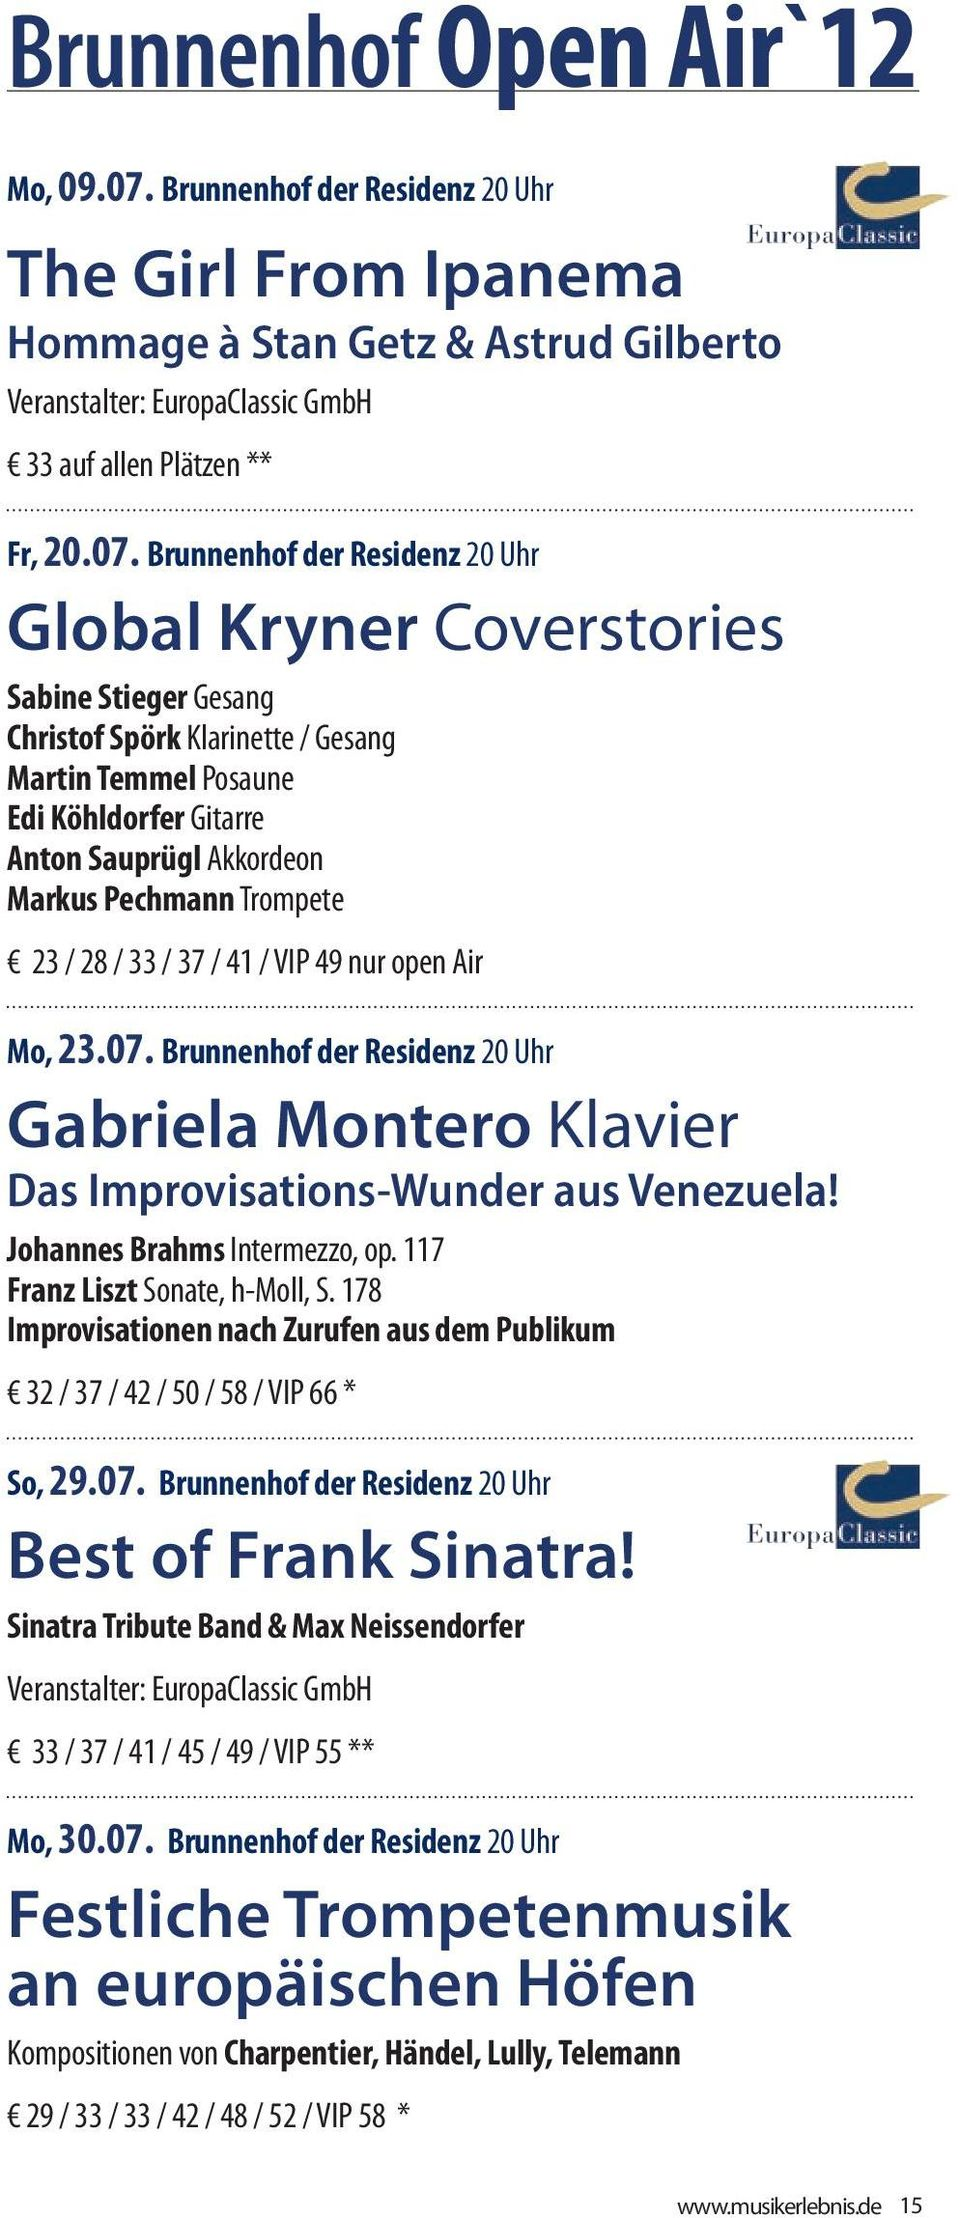 Brunnenhof der Residenz 20 Uhr Global Kryner Coverstories Sabine Stieger Gesang Christof Spörk Klarinette / Gesang Martin Temmel Posaune Edi Köhldorfer Gitarre Anton Sauprügl Akkordeon Markus